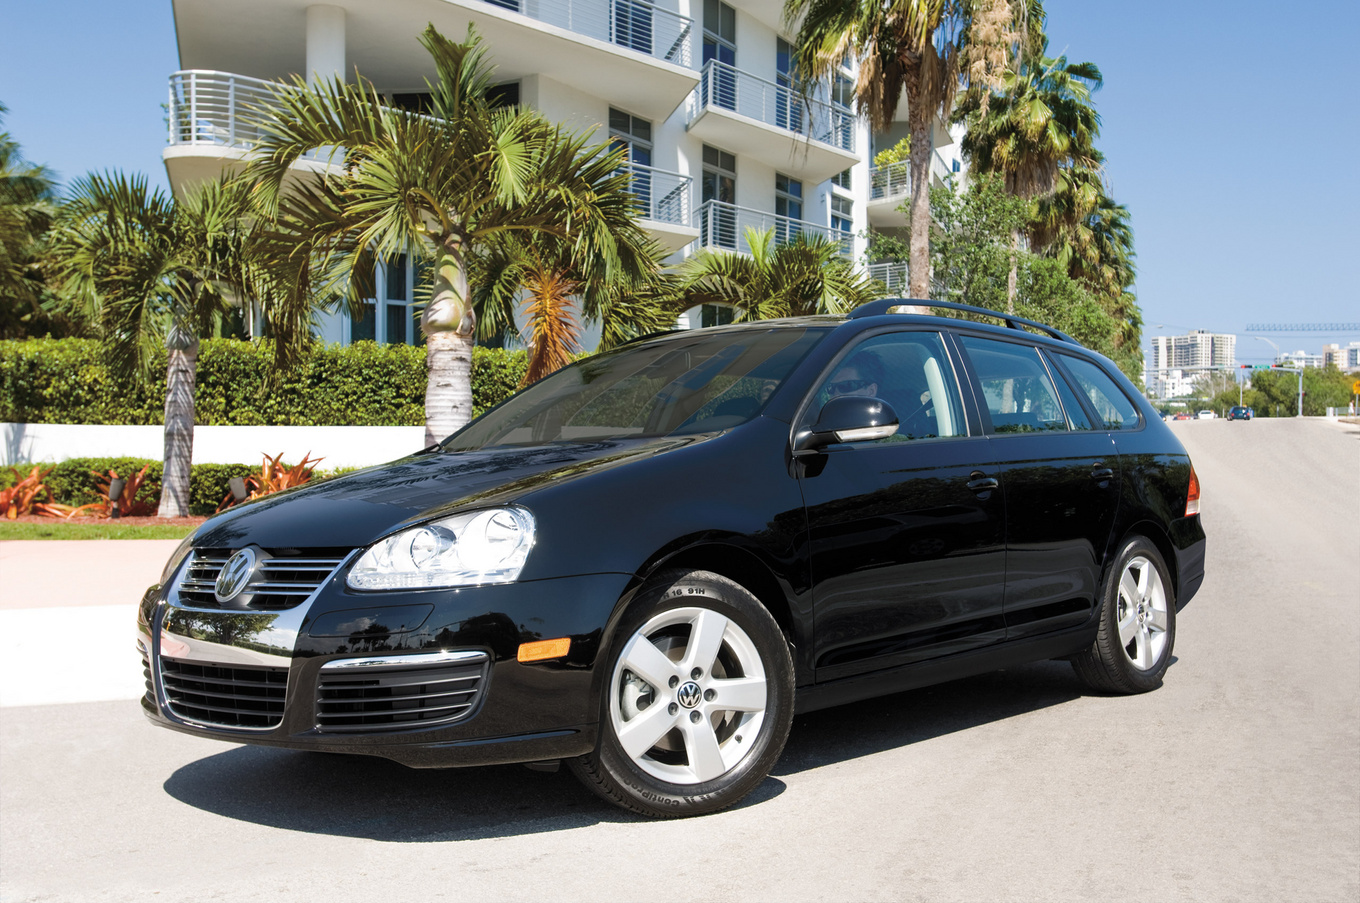 2009 volkswagen jetta exterior pictures cargurus. Black Bedroom Furniture Sets. Home Design Ideas